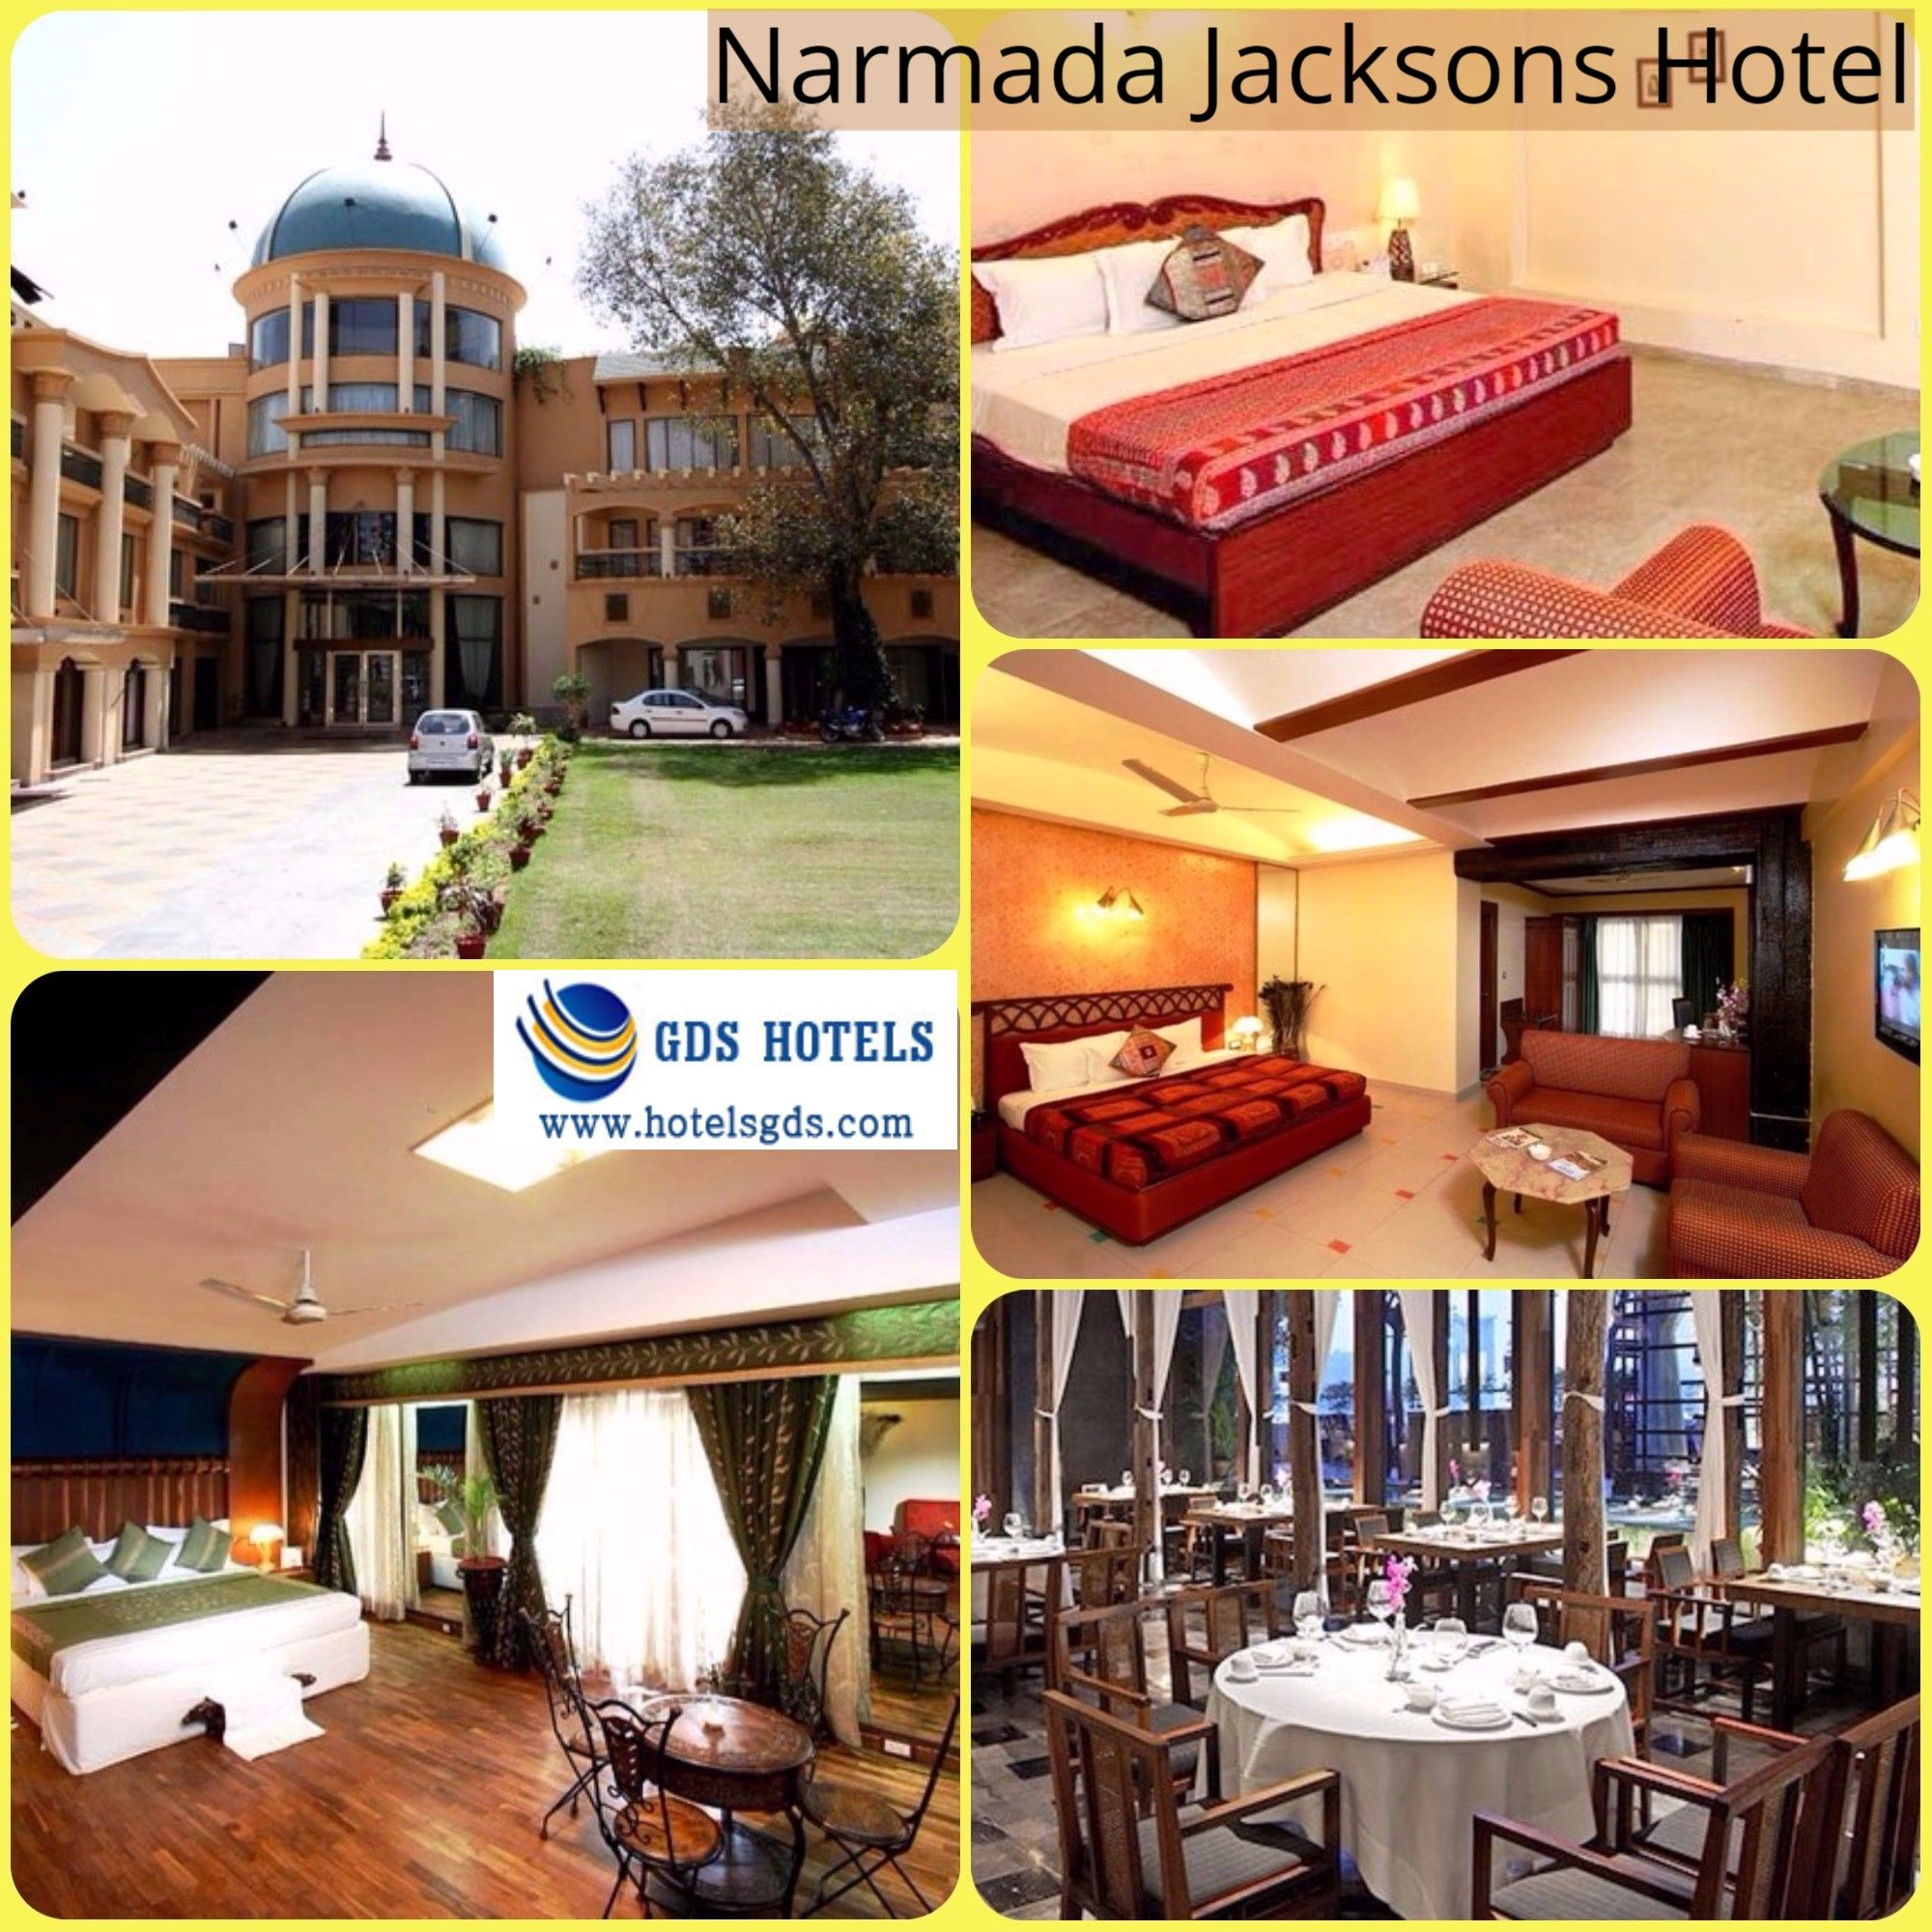 Narmada Jacksons Hotel In Jabalpur, Is A Superb #hotel. In